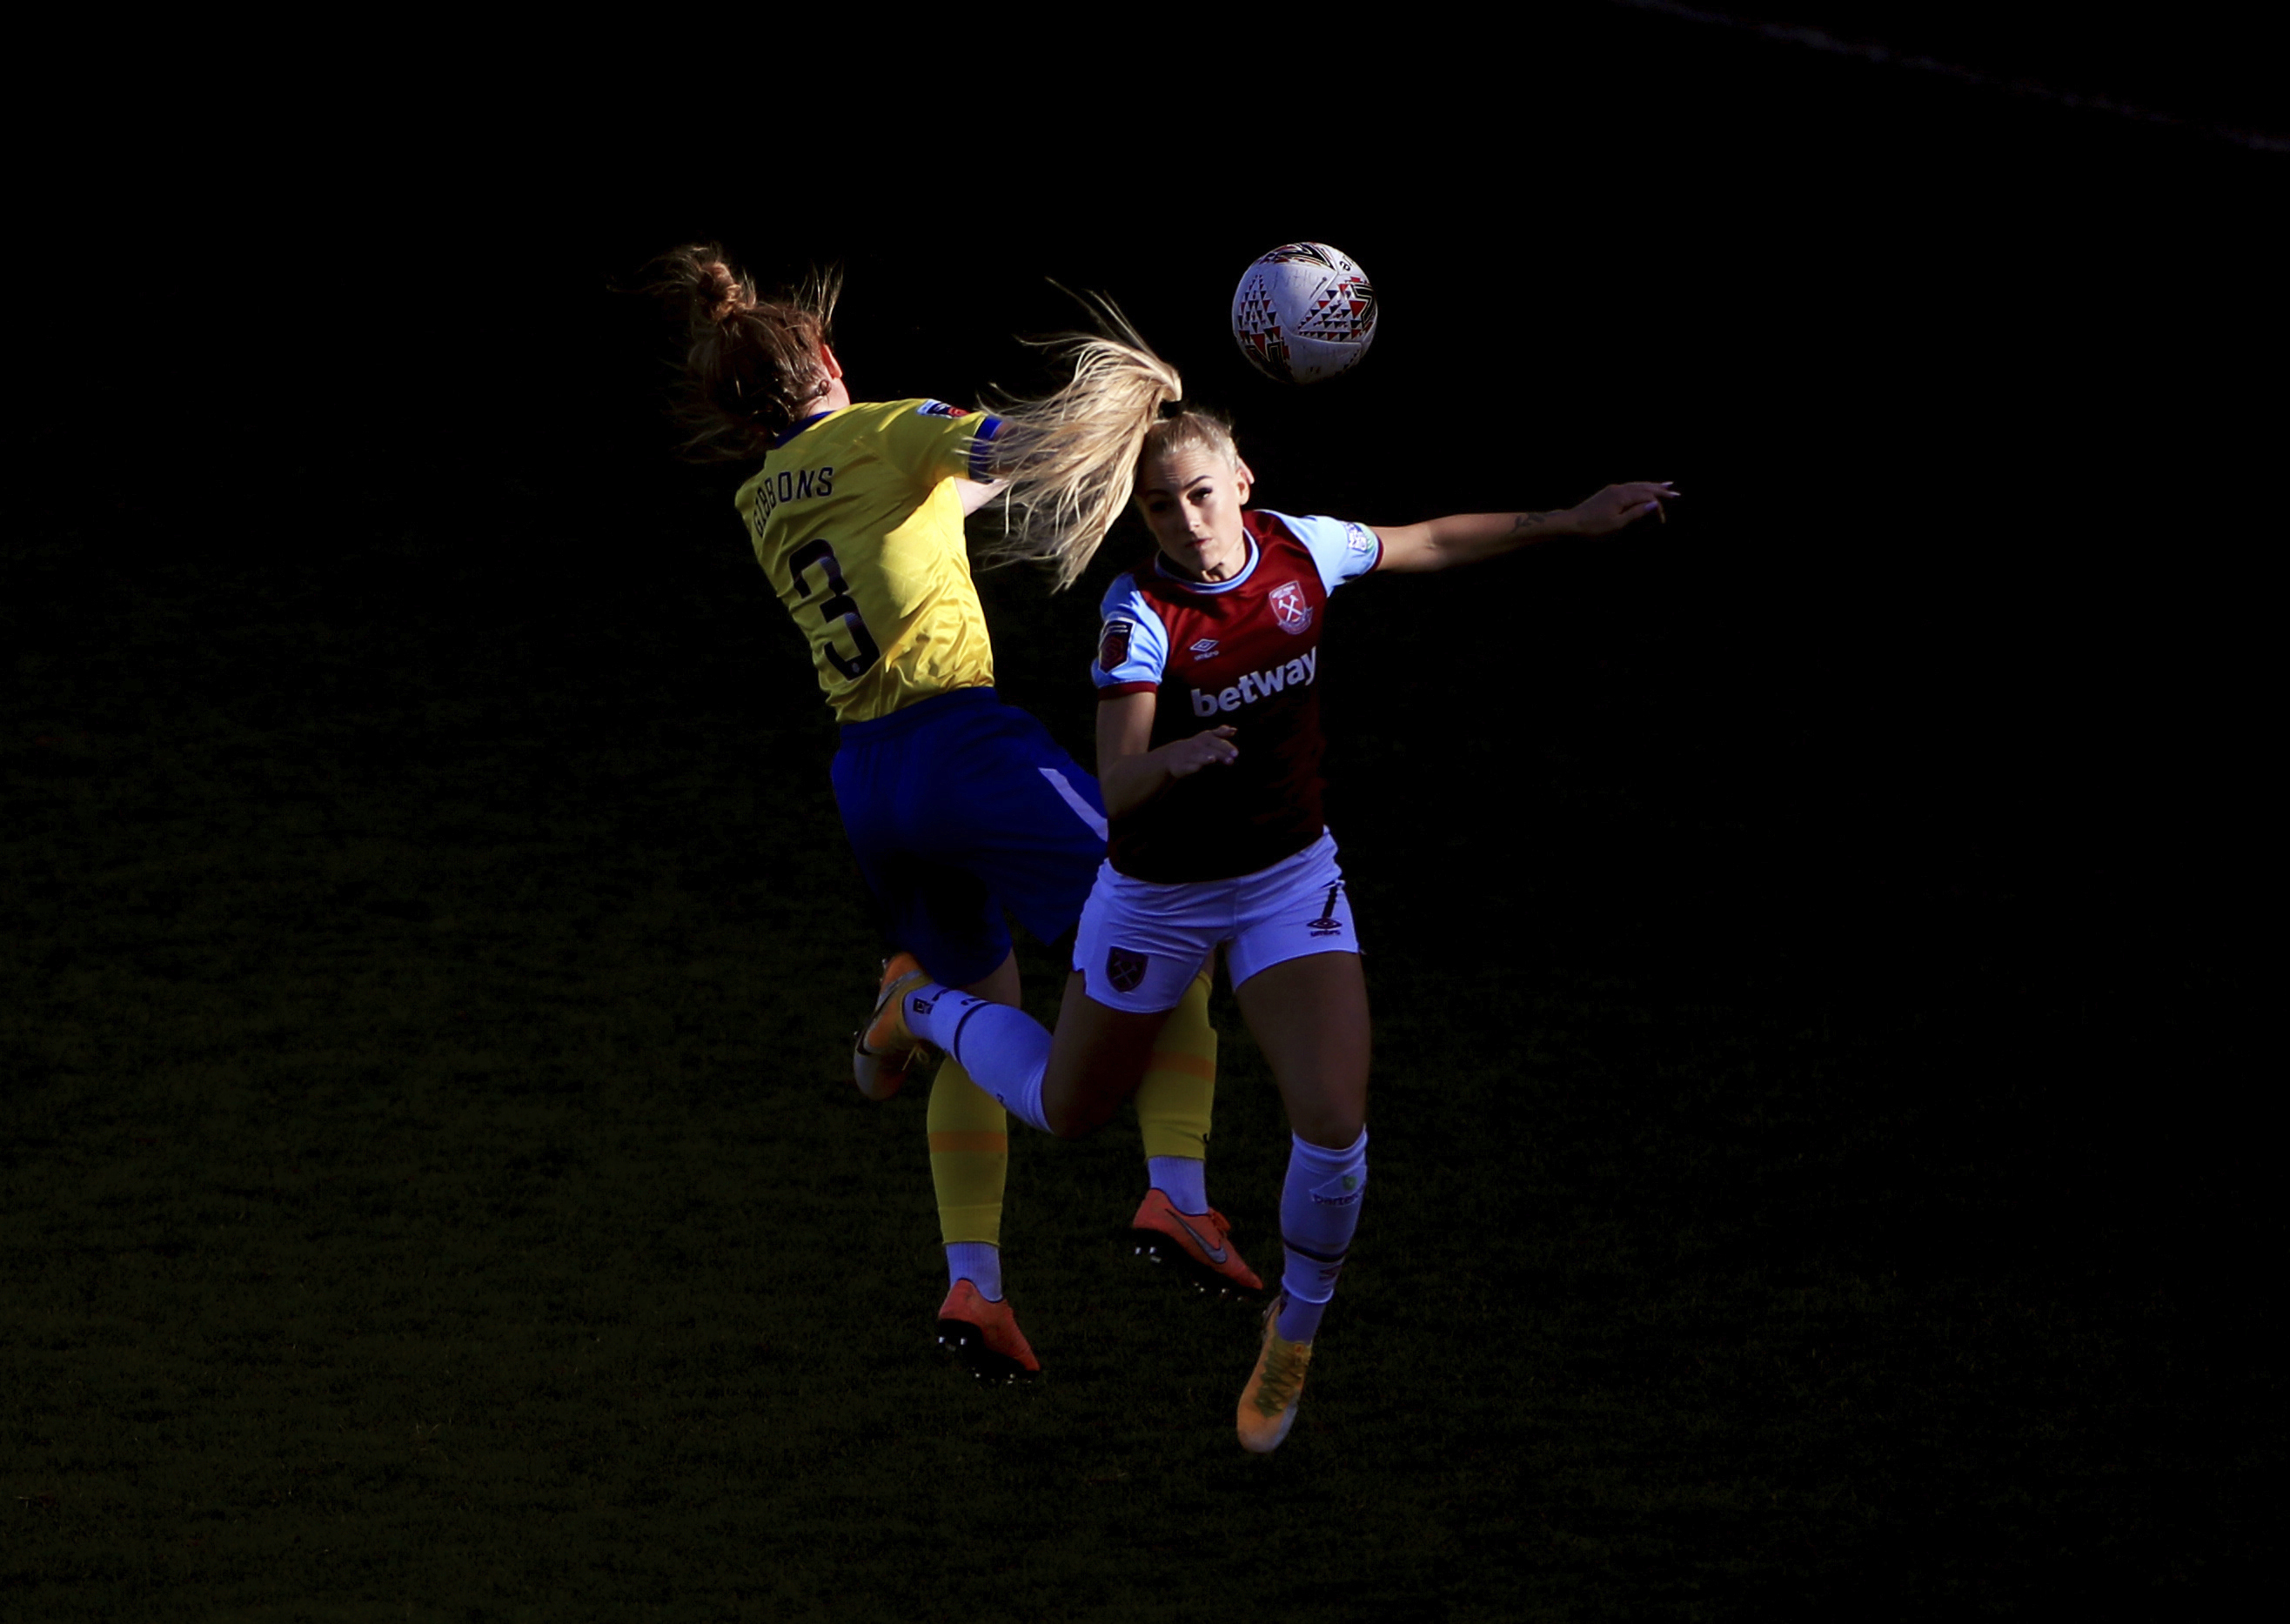 Brighton and Hove Albion's Felicity Gibbons, left, and West Ham United's Alisha Lehmann are caught in sunlight, competing for a header during their Women's Super League soccer match at Chigwell Construction Stadium, in London, Sunday Nov. 15, 2020. (Mike Egerton/PA via AP)